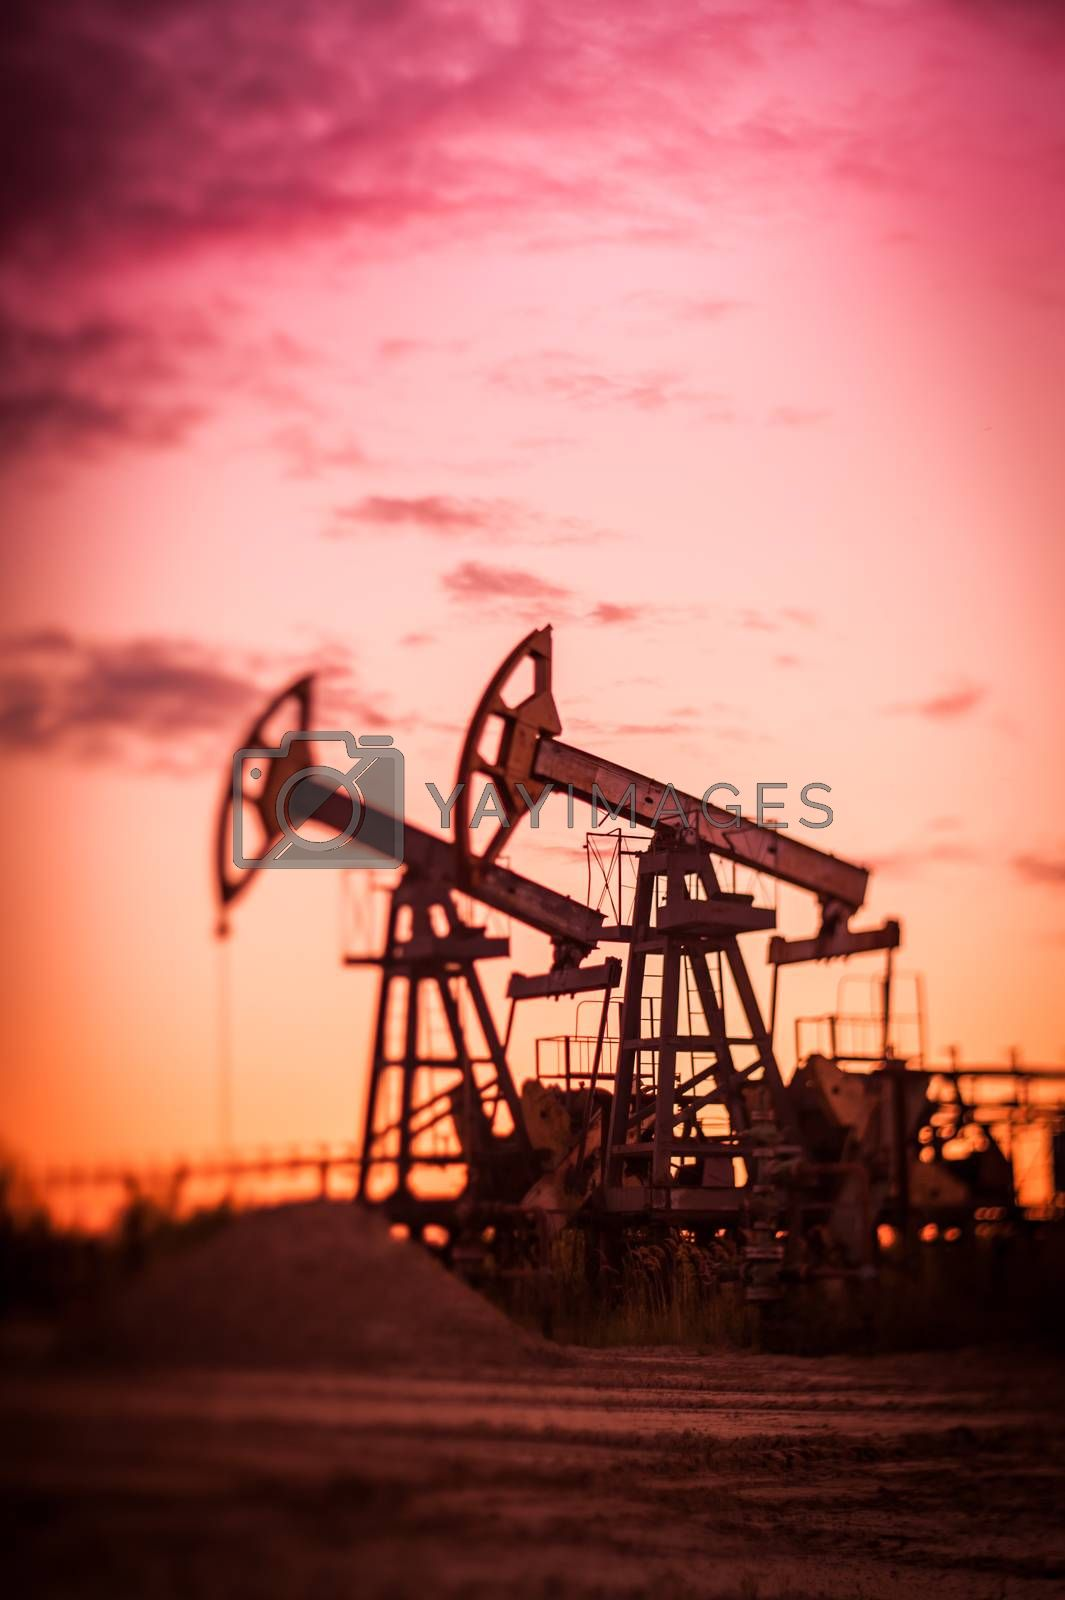 Oil pump jacks at sunset sky background. Selective focus, shallow depth of field